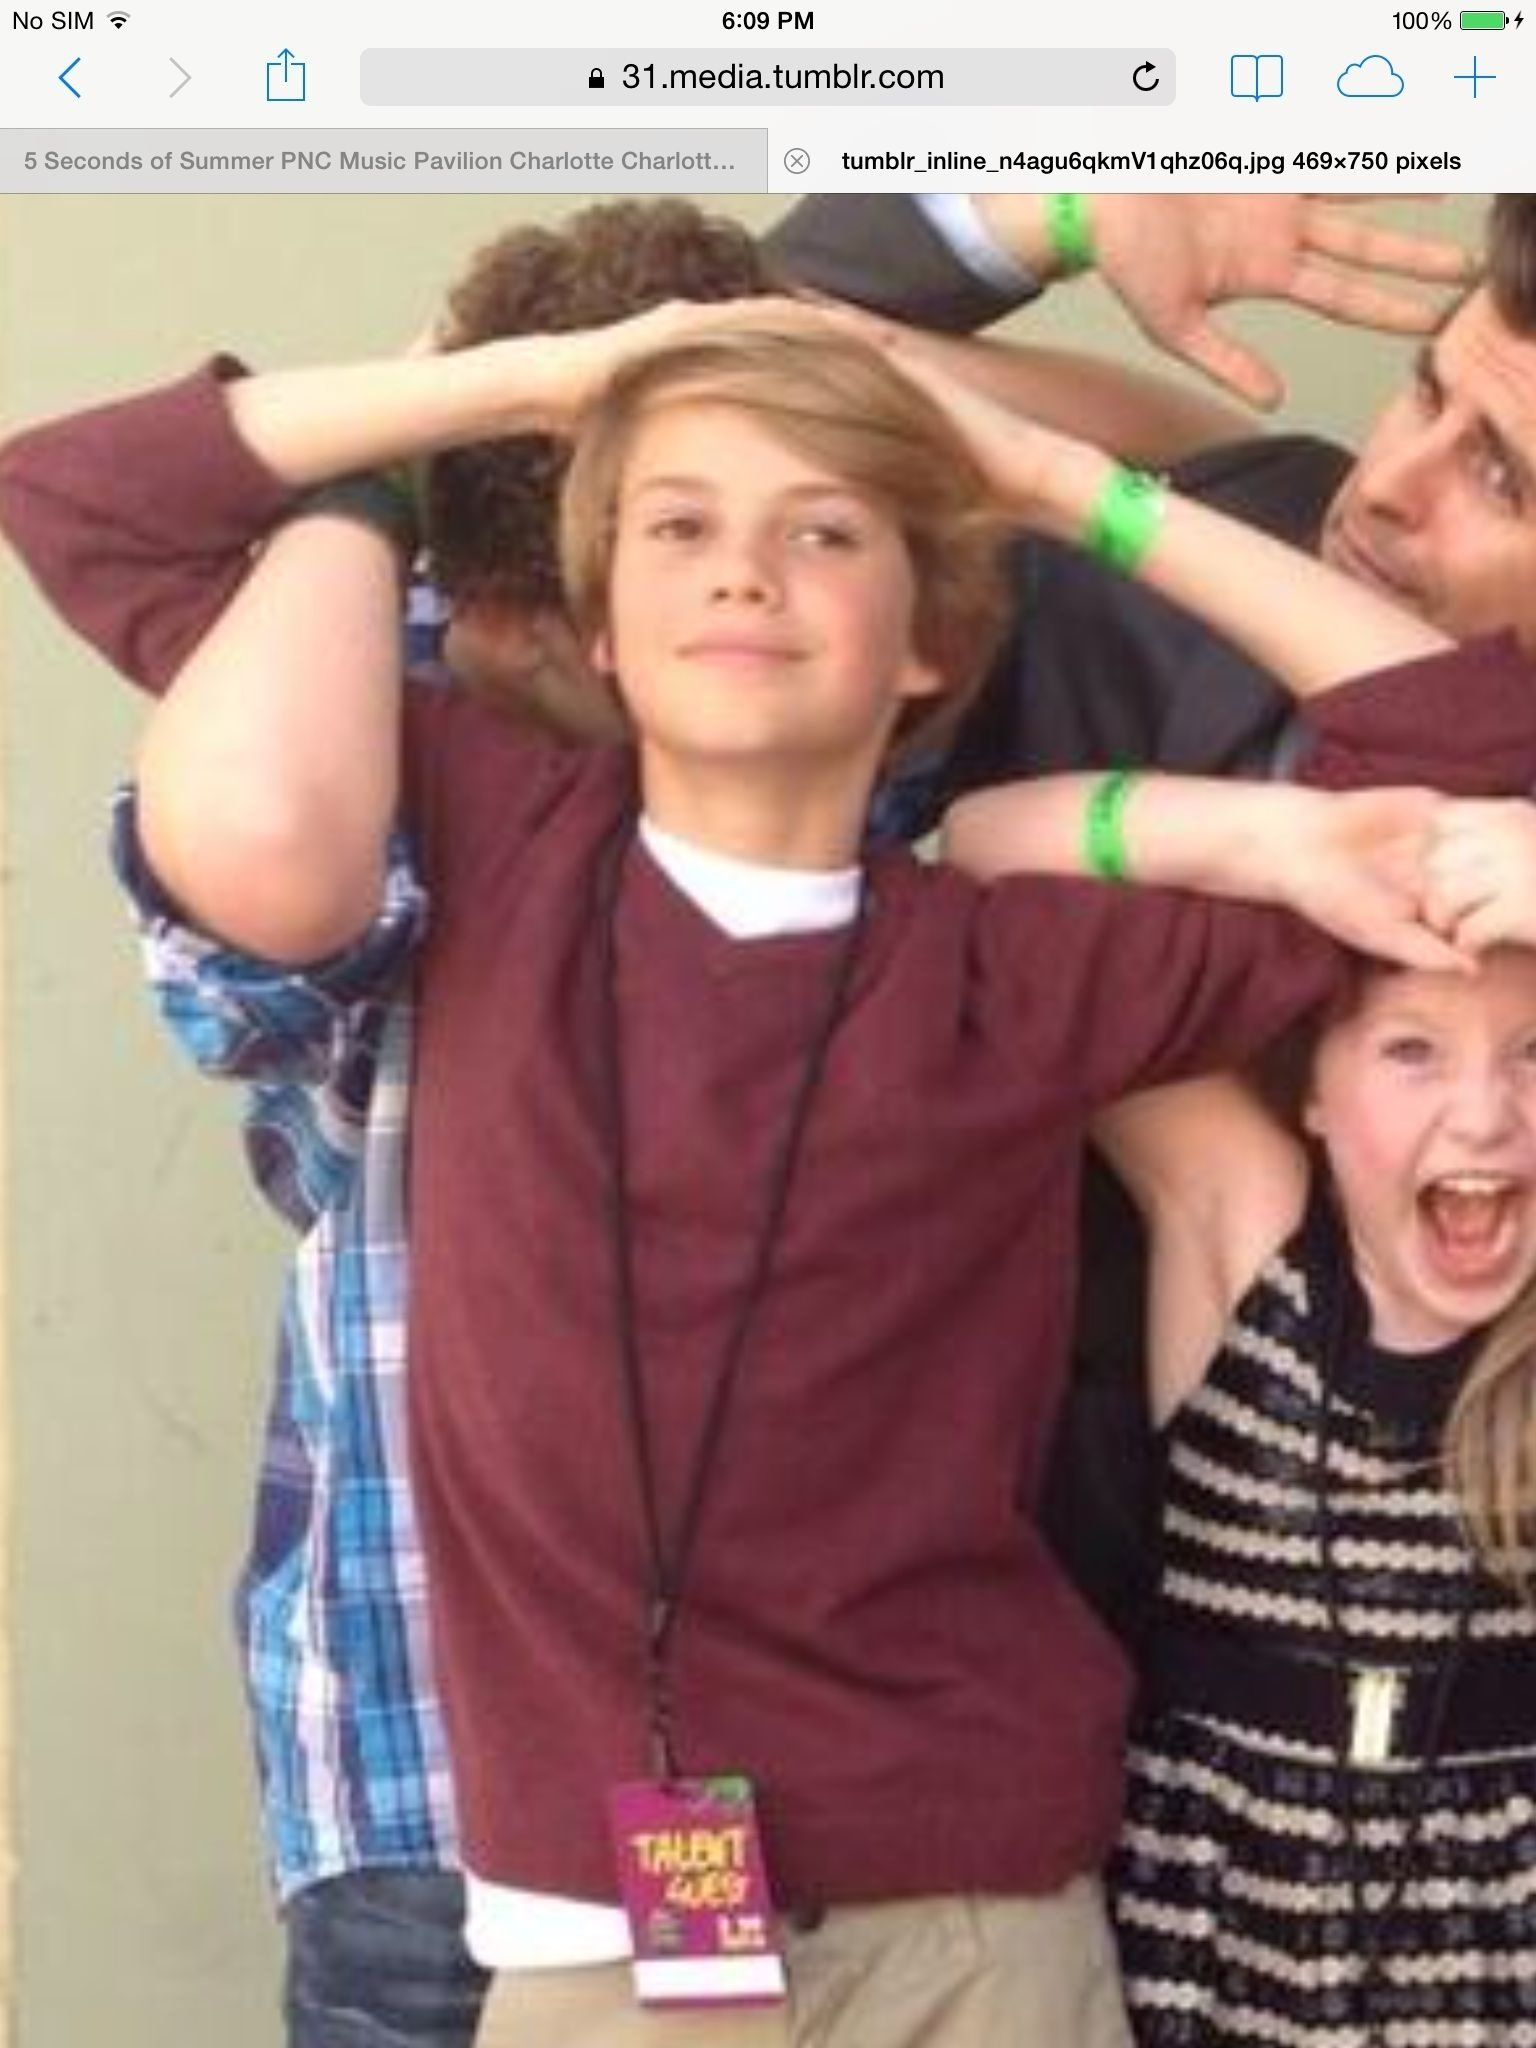 10 Best Job Ideas For 13 Year Olds henry danger follows 13 year old henry jace norman who lands a 2020